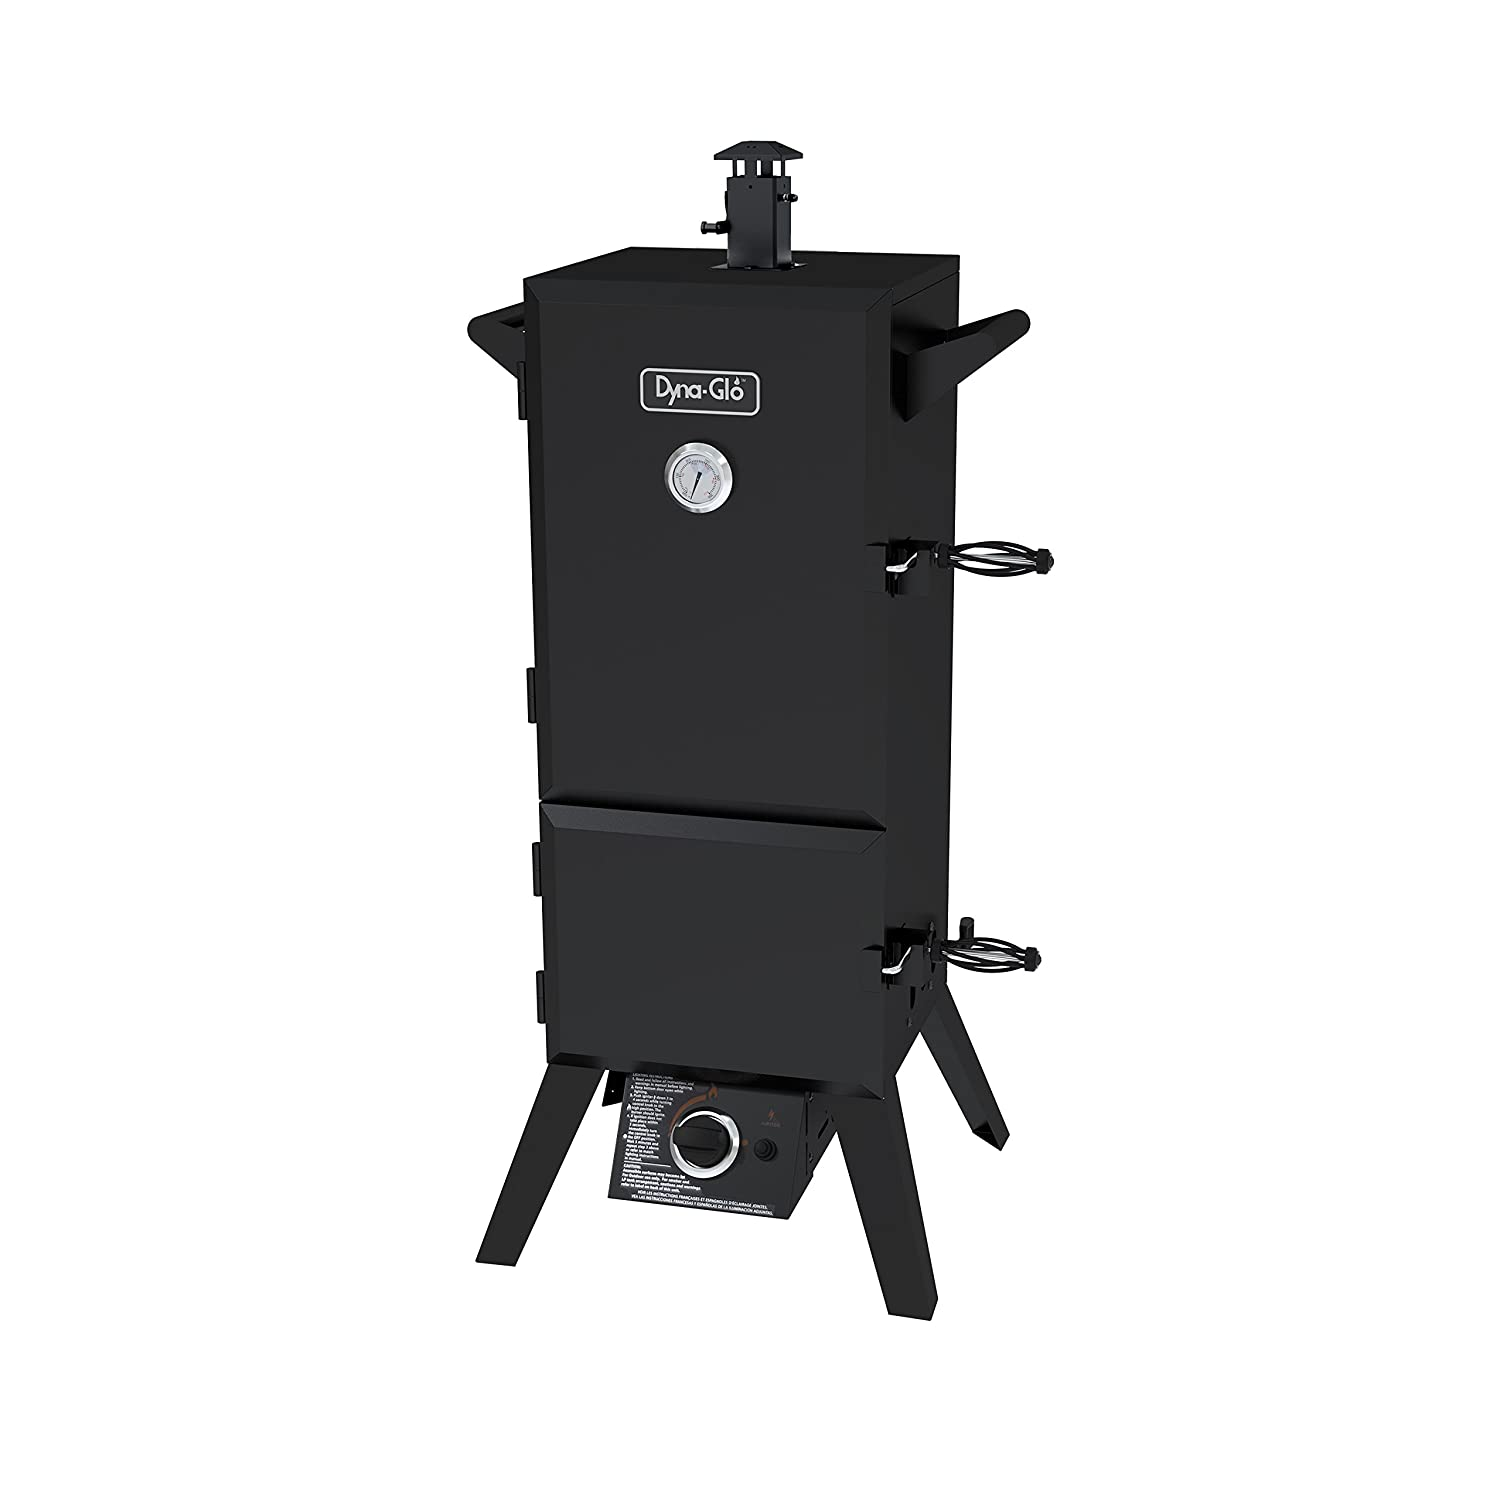 Dyna-Glo DGY784BDP - best propane smoker